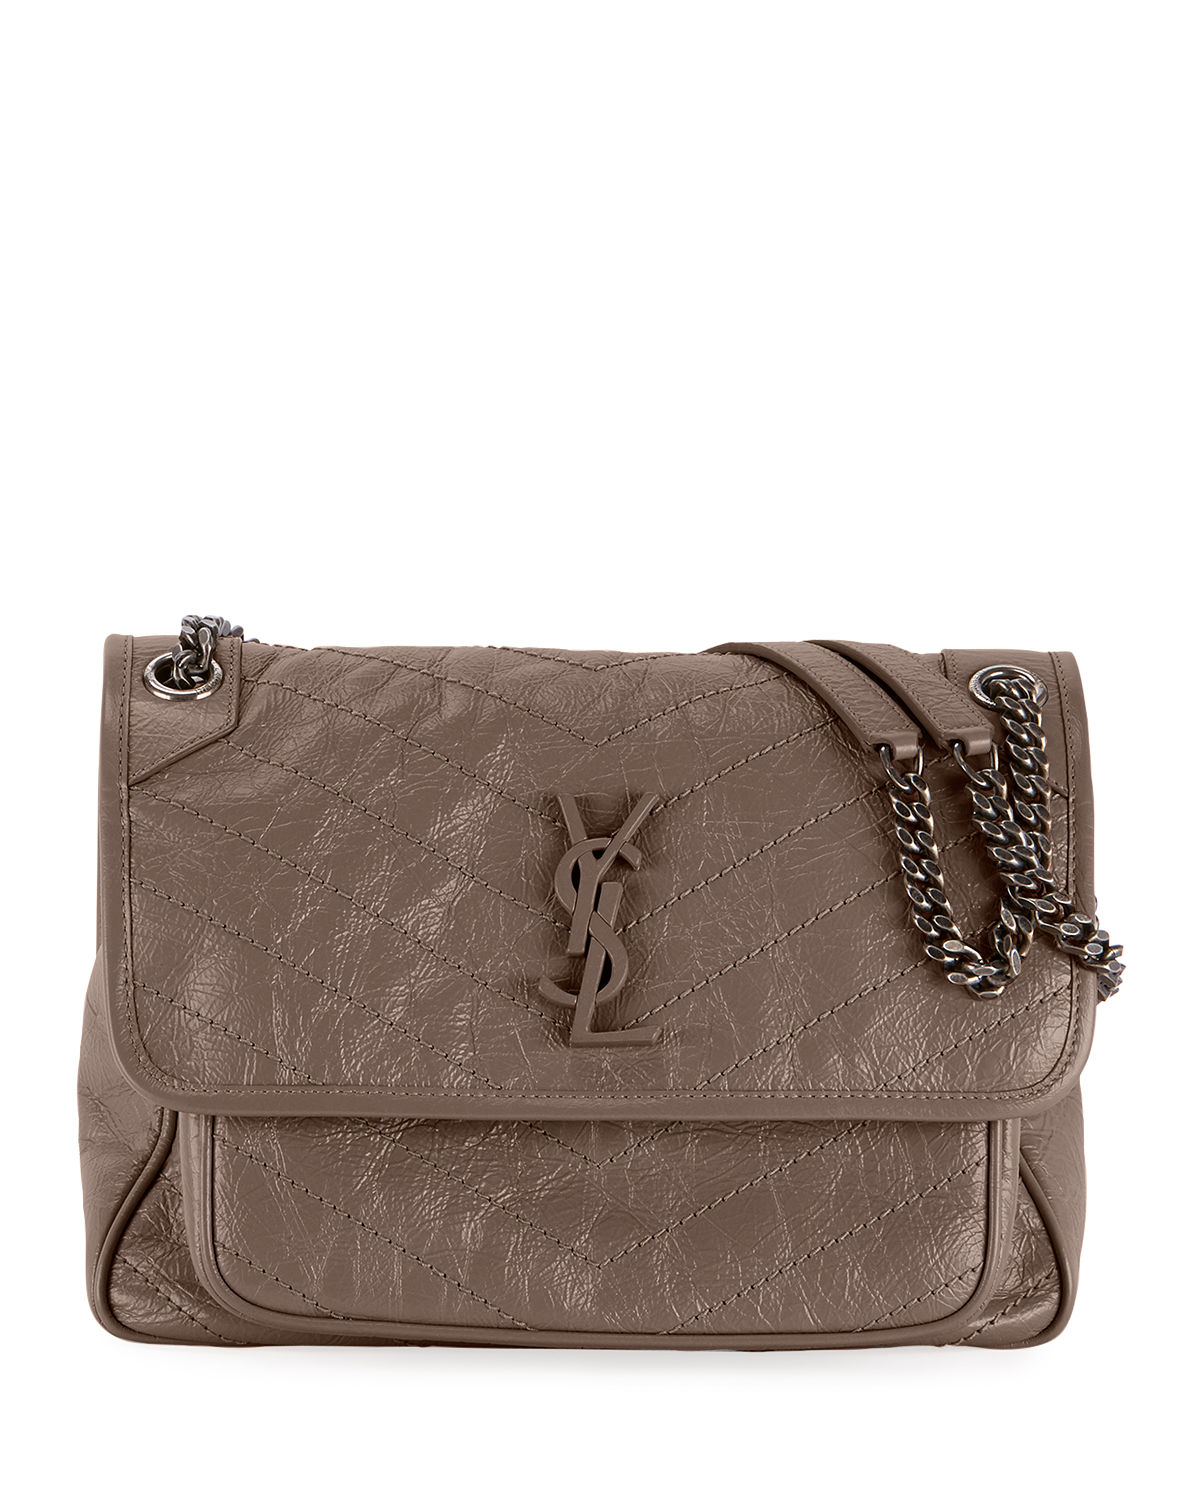 8460f38ffc Saint Laurent Niki Medium Monogram Ysl Shiny Waxy Quilted Shoulder Bag In  Light Gray